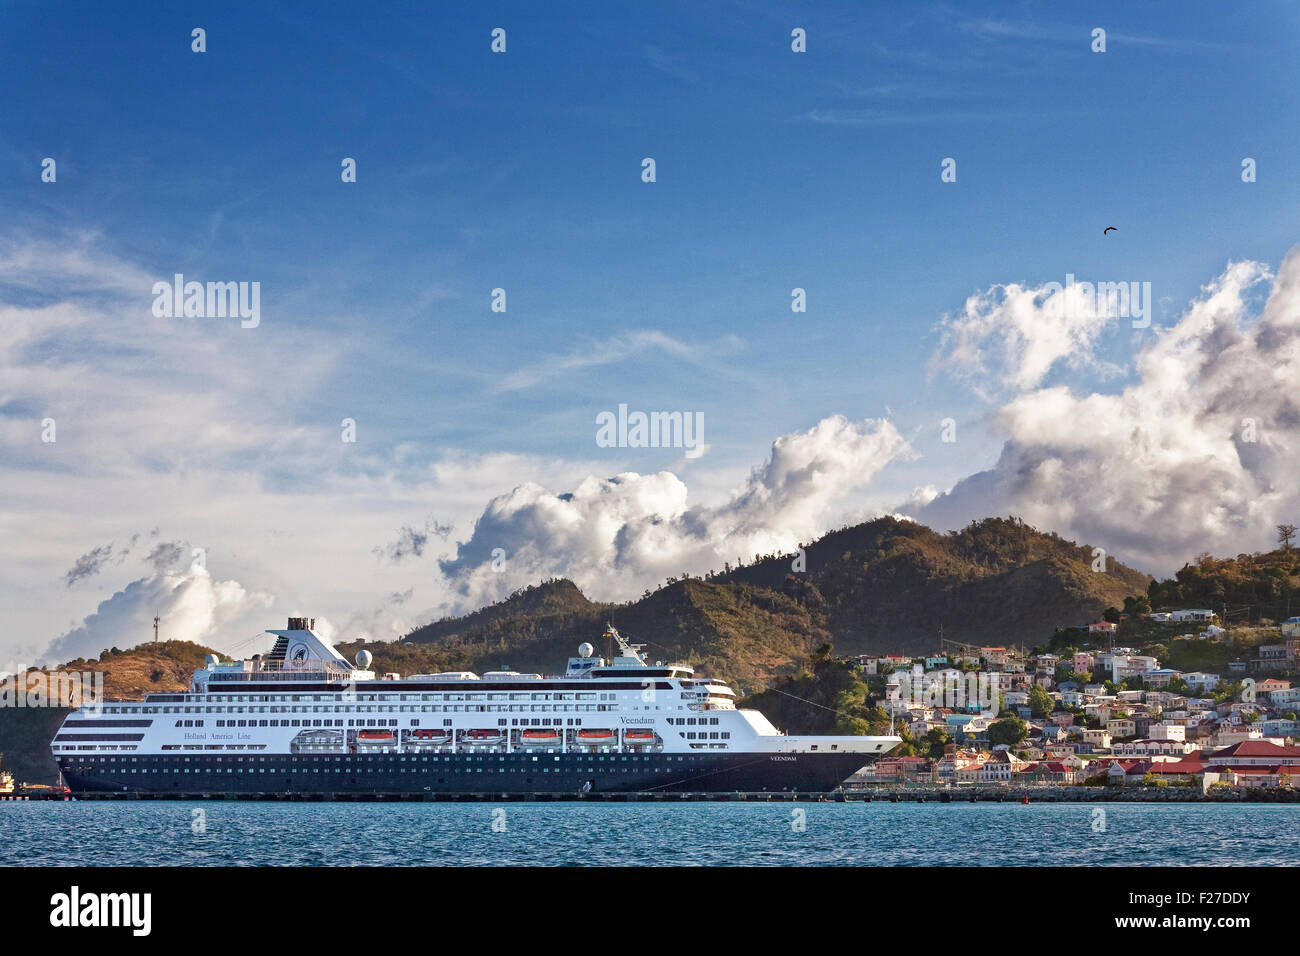 Holland America Cruise Ship in the Carnage, St. George, Grenada - Stock Image